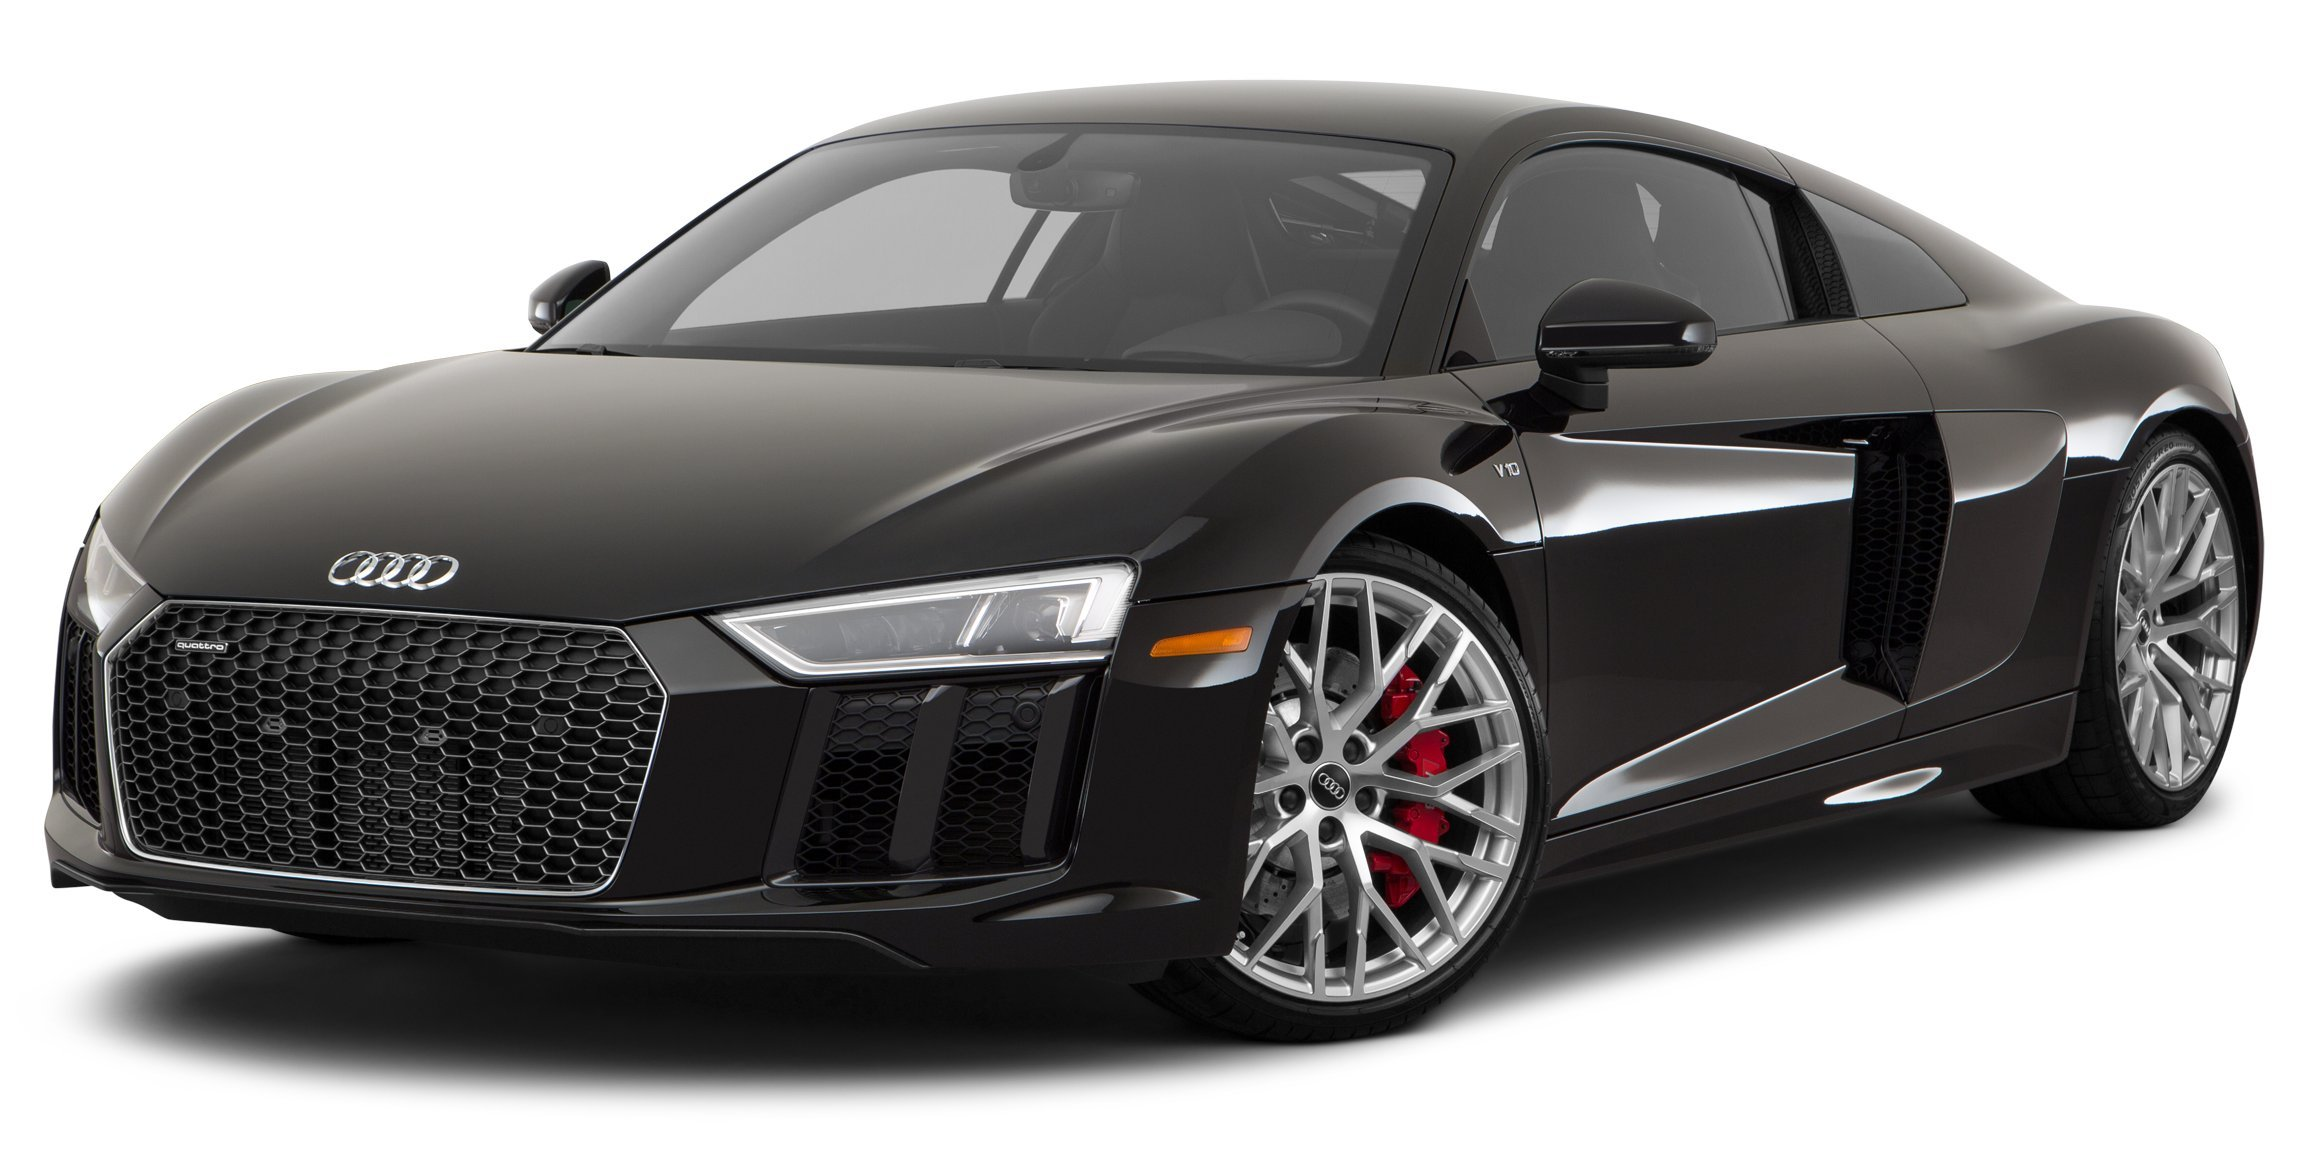 2017 audi r8 reviews images and specs vehicles. Black Bedroom Furniture Sets. Home Design Ideas